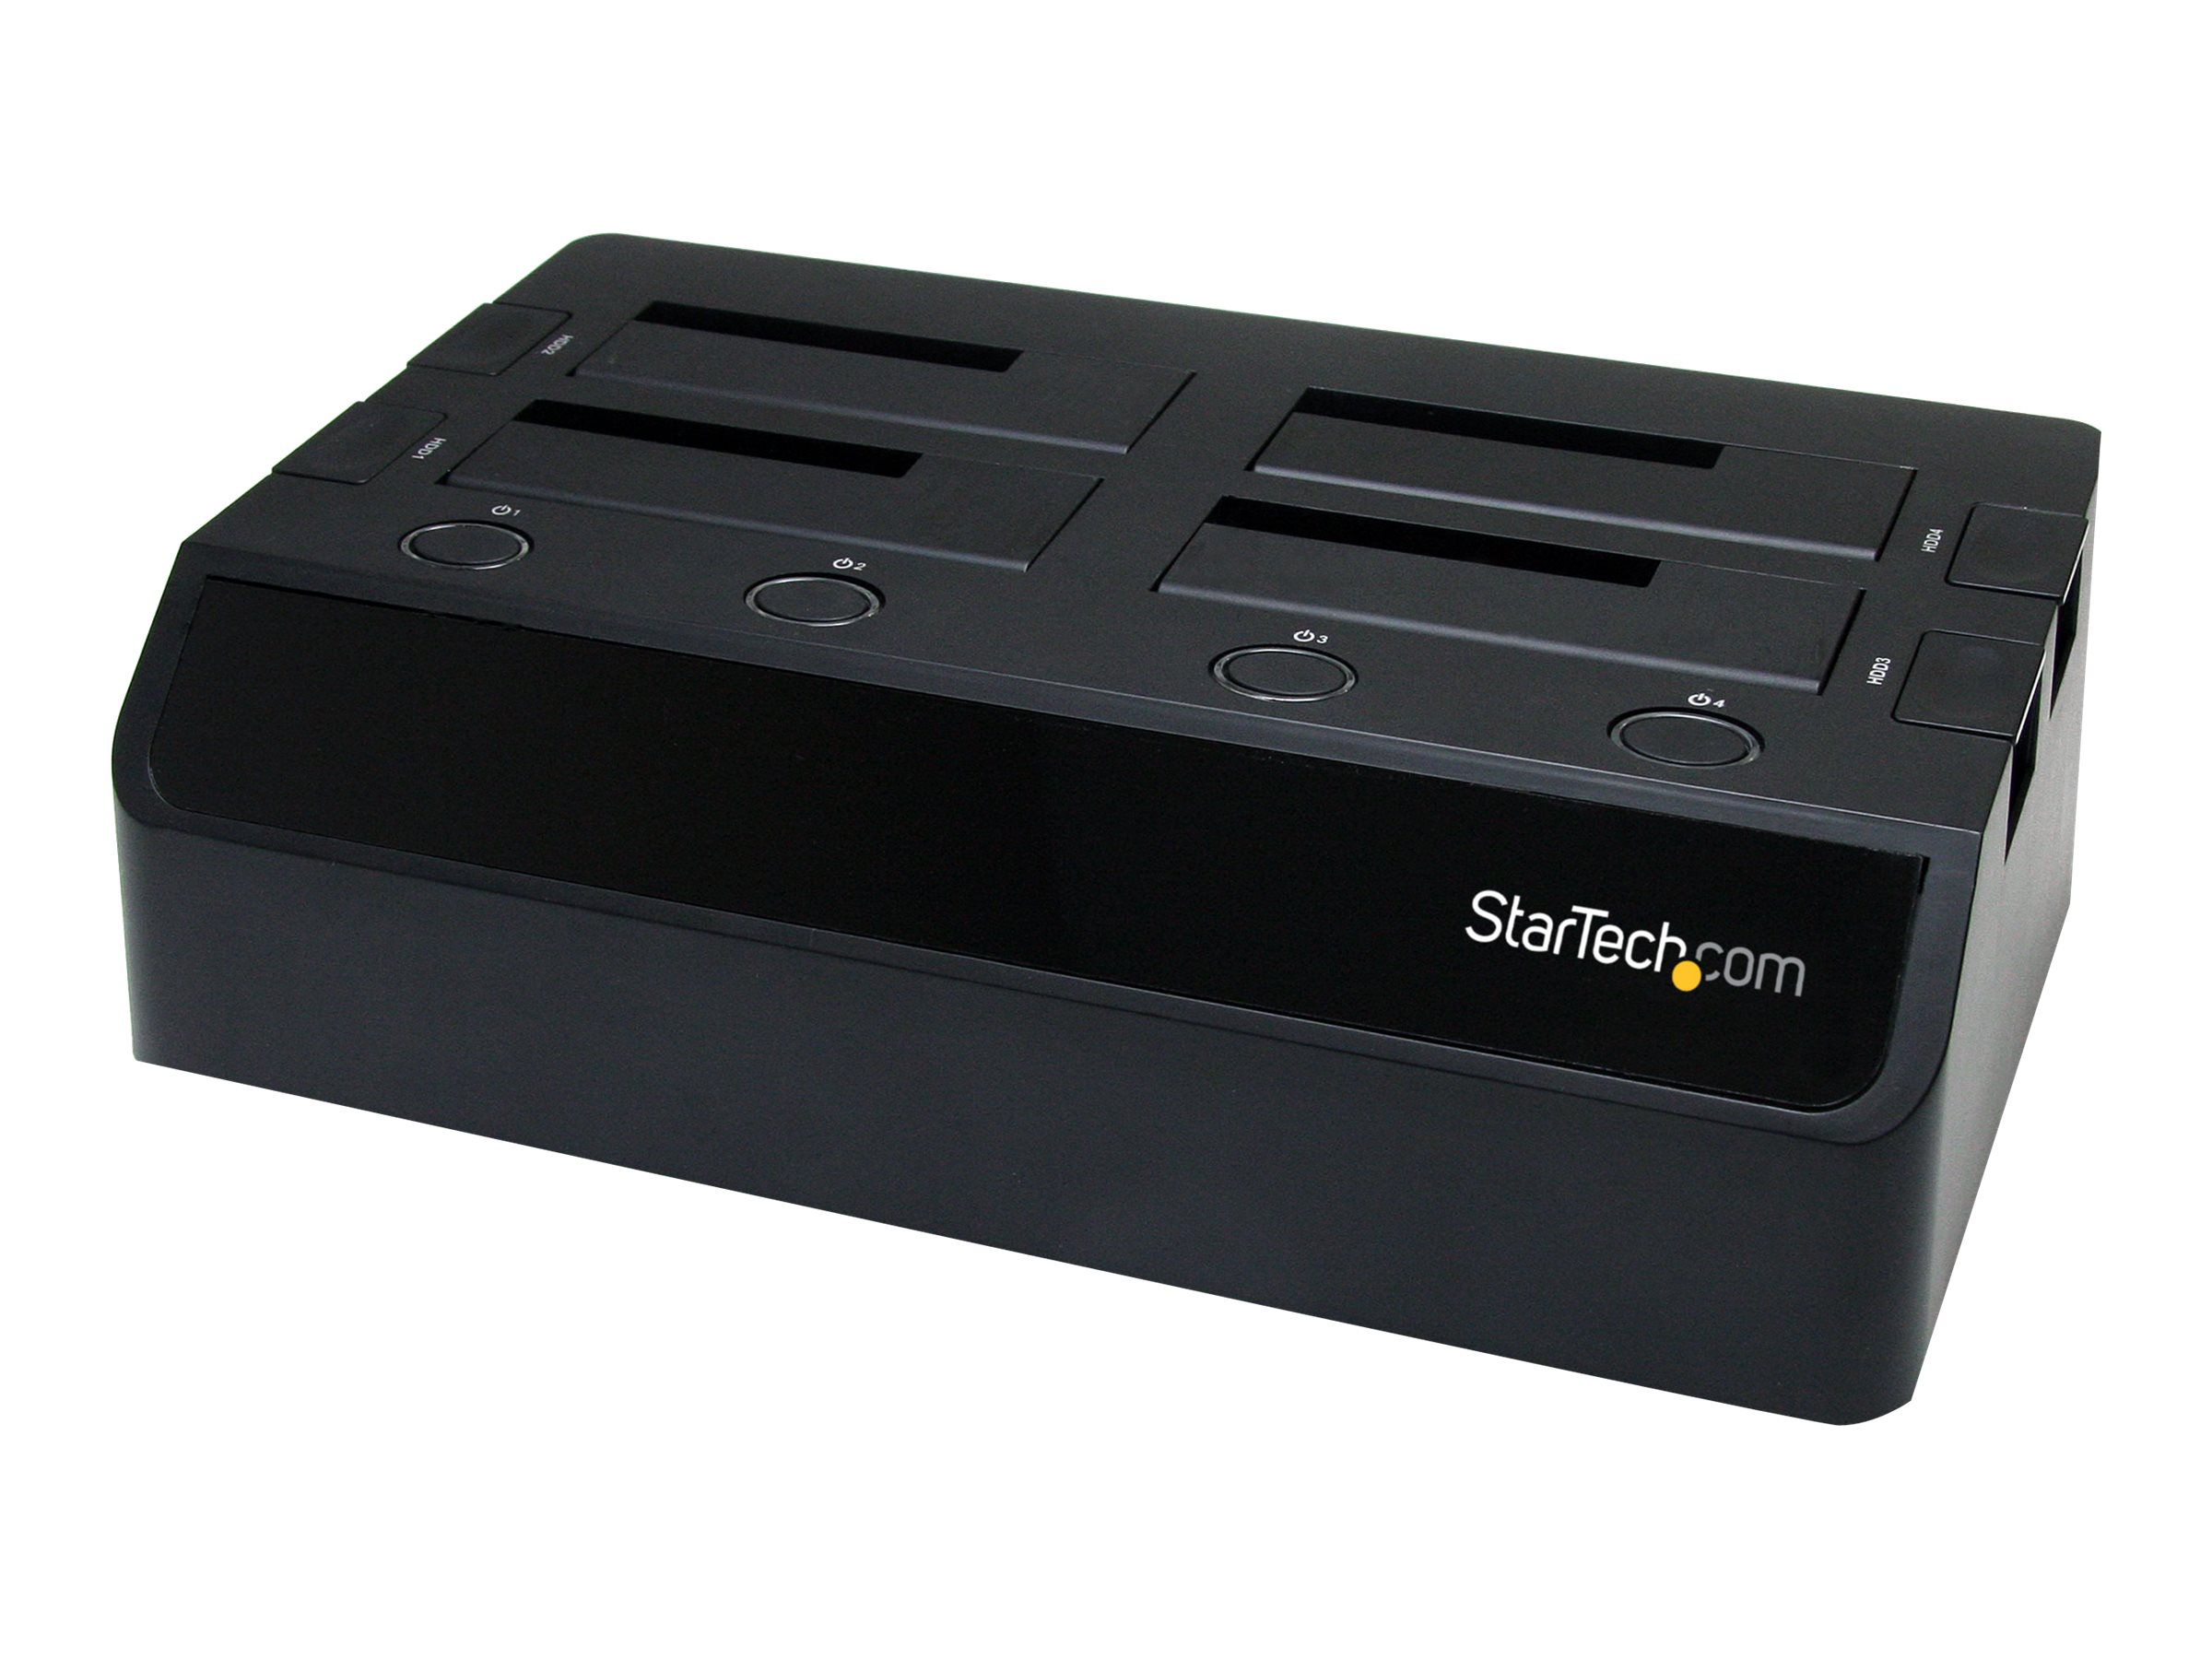 StarTech.com 4-Bay eSATA USB 3.0 to SATA HDD Docking Station